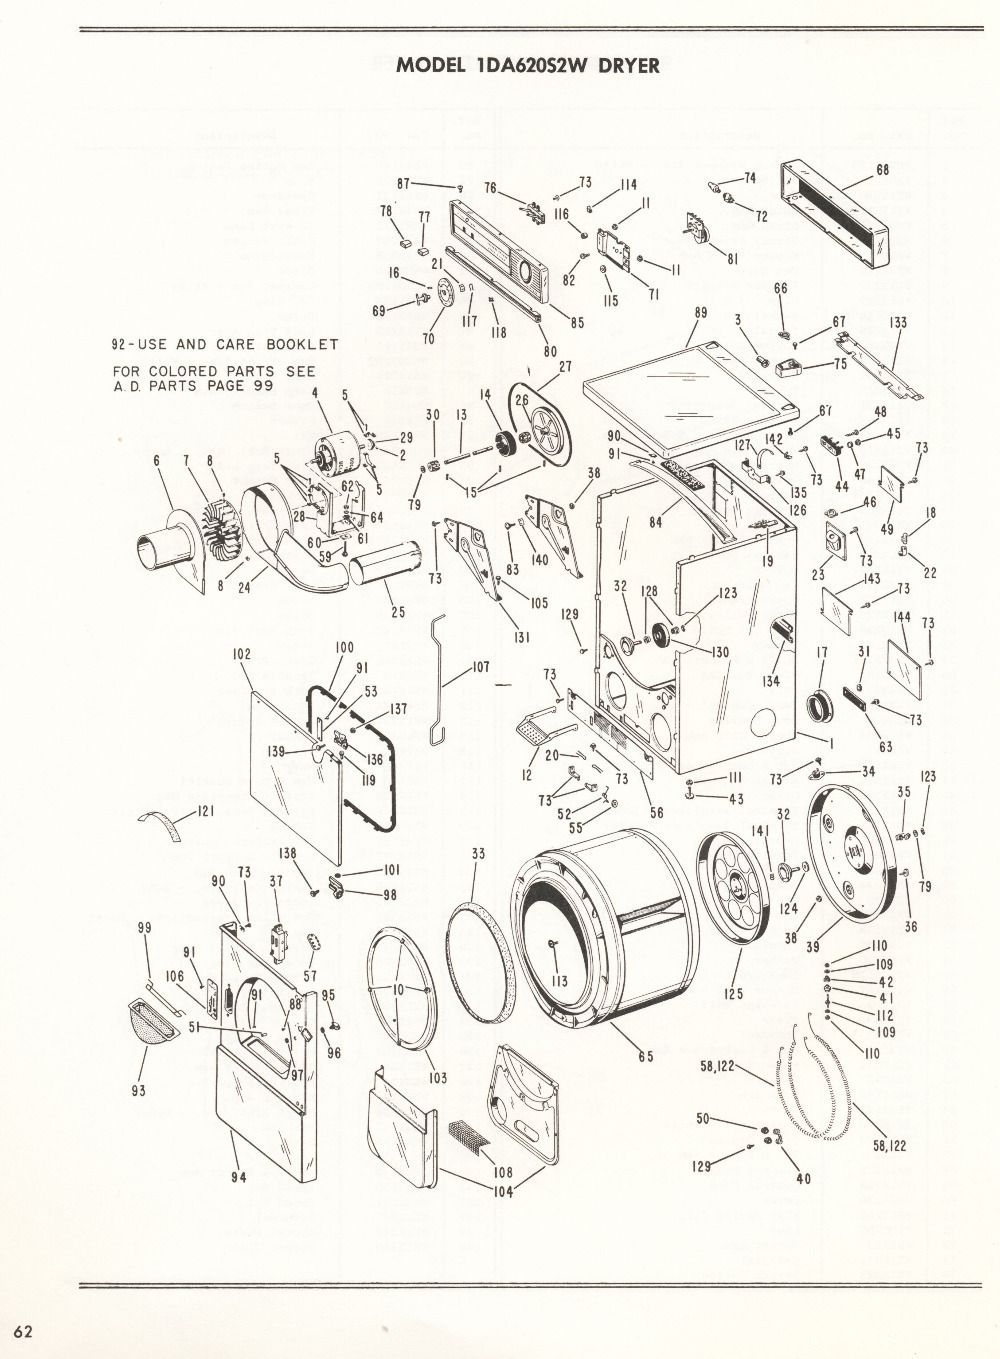 1959 GE Dryer Service Manual Doctrine 07.07.12 | resit ... Ge Dryer Schematic on